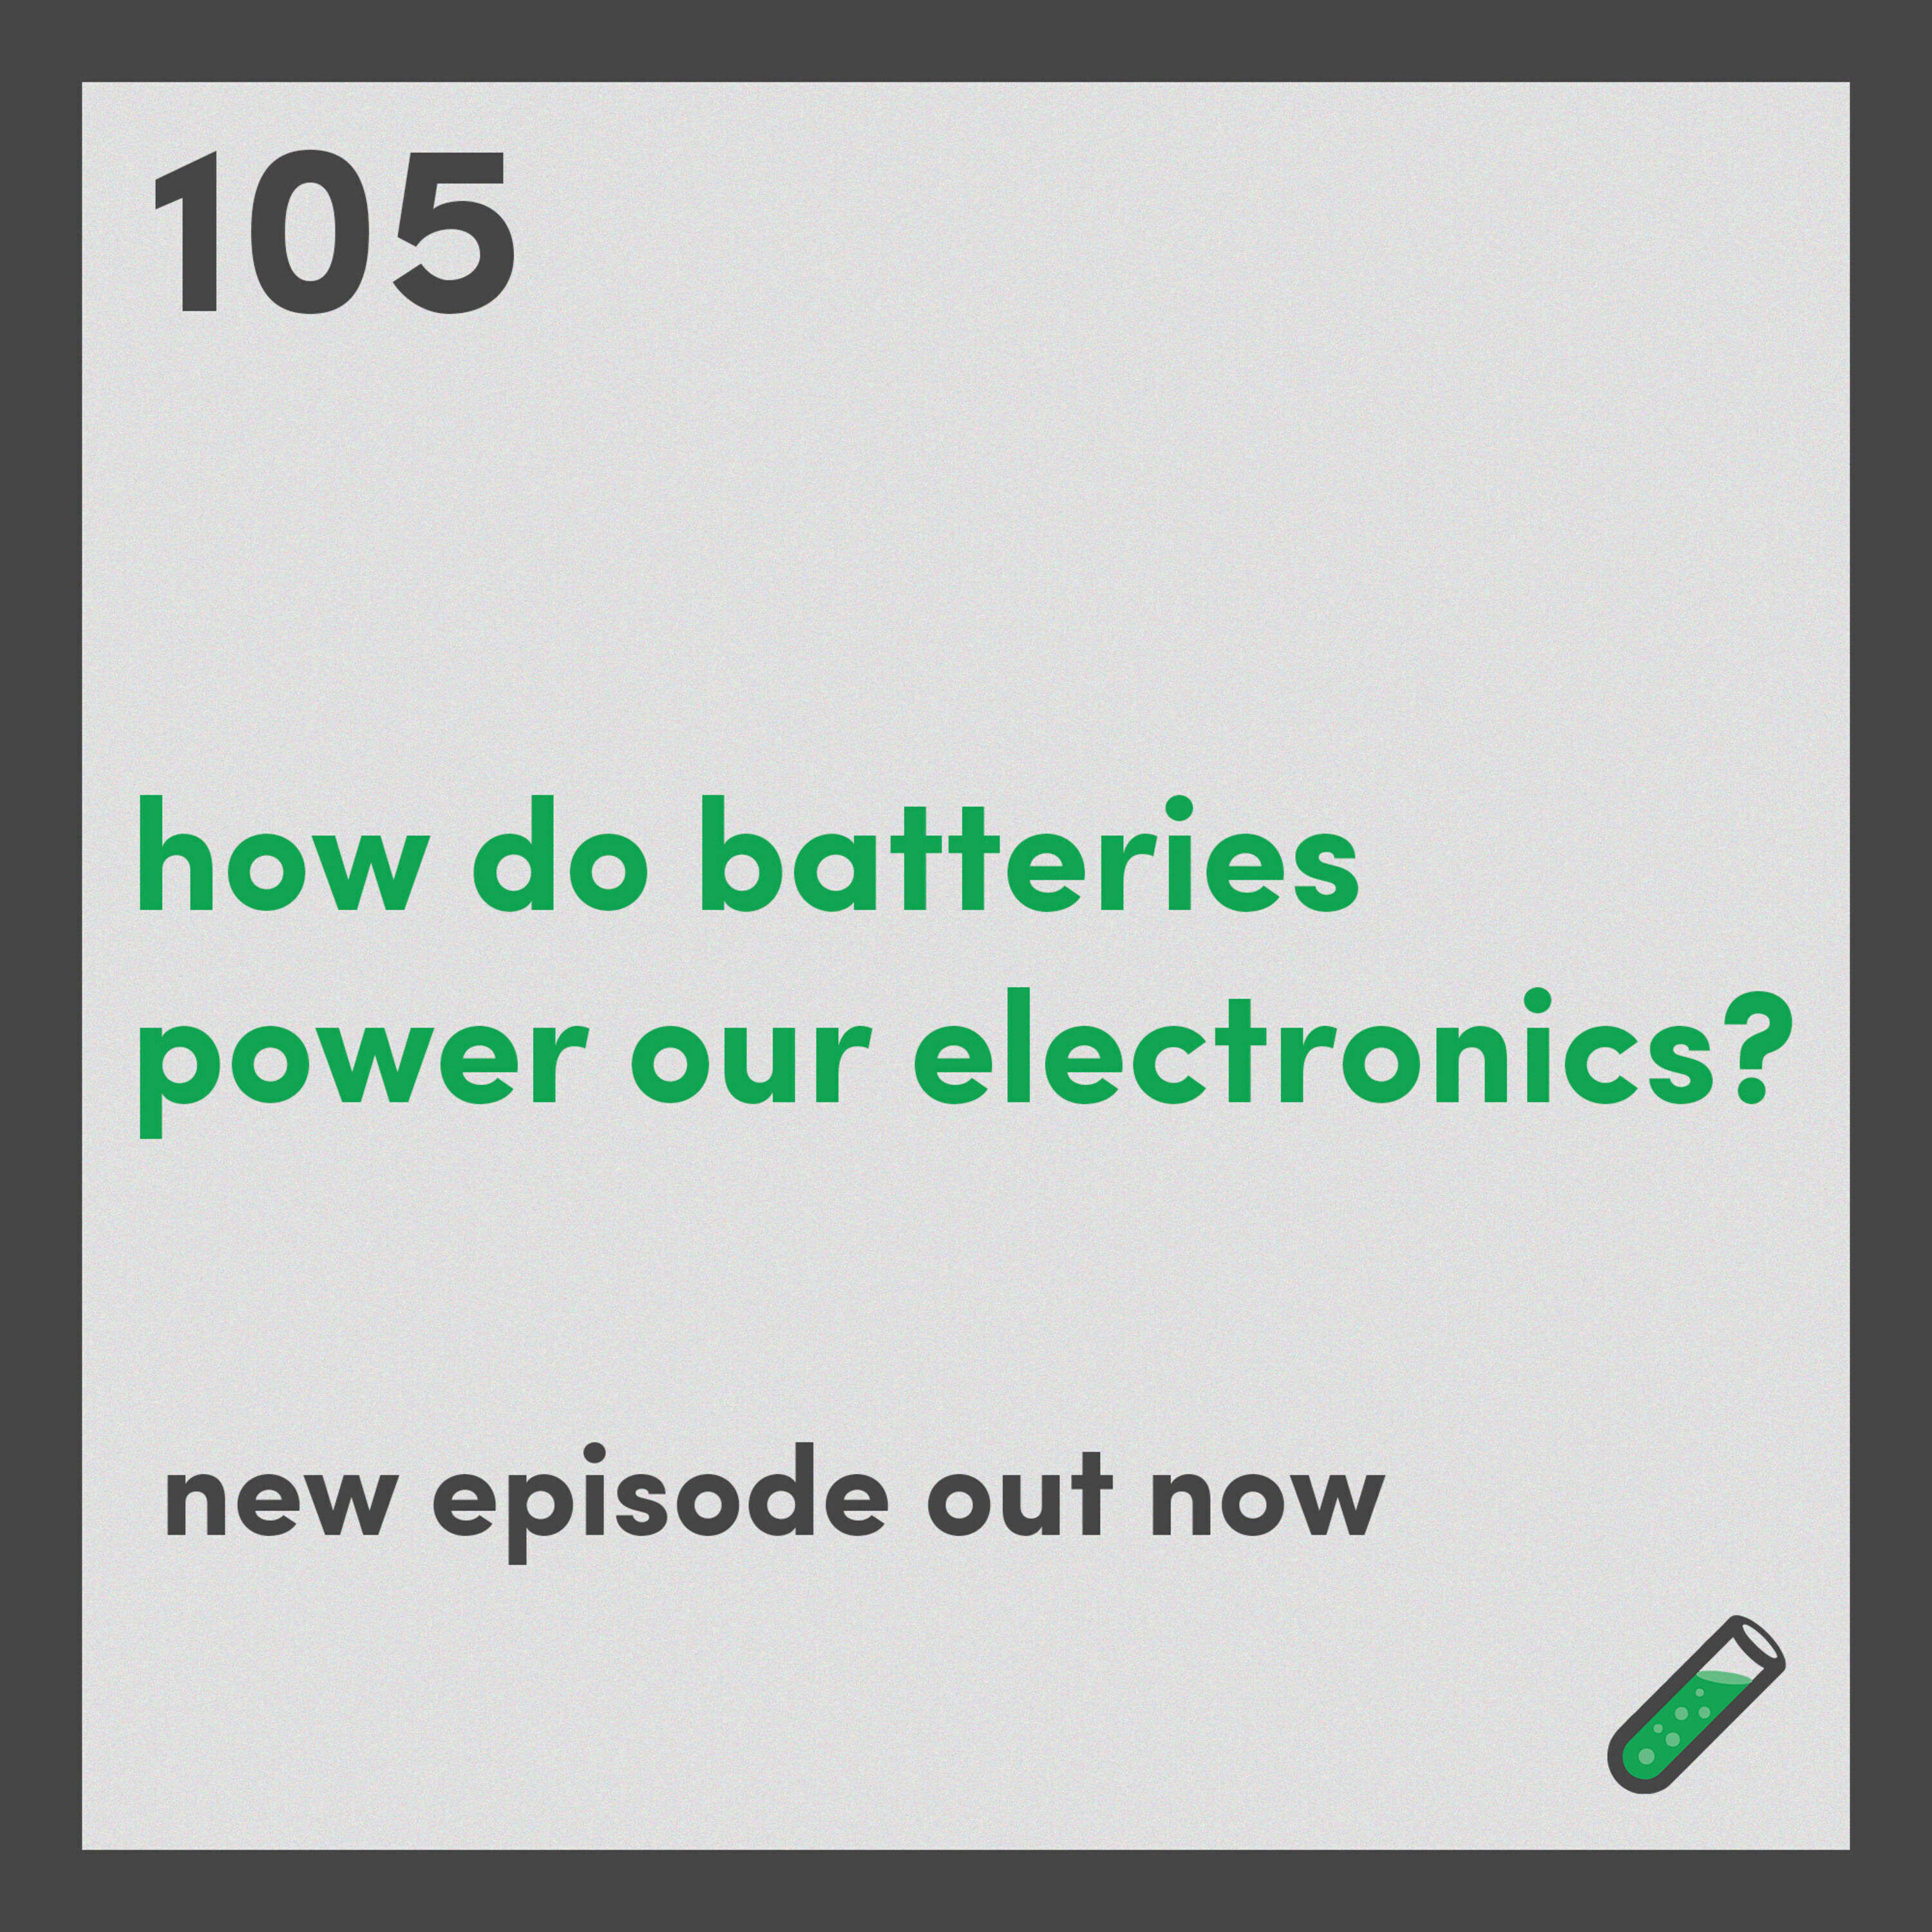 How do batteries power our electronics?